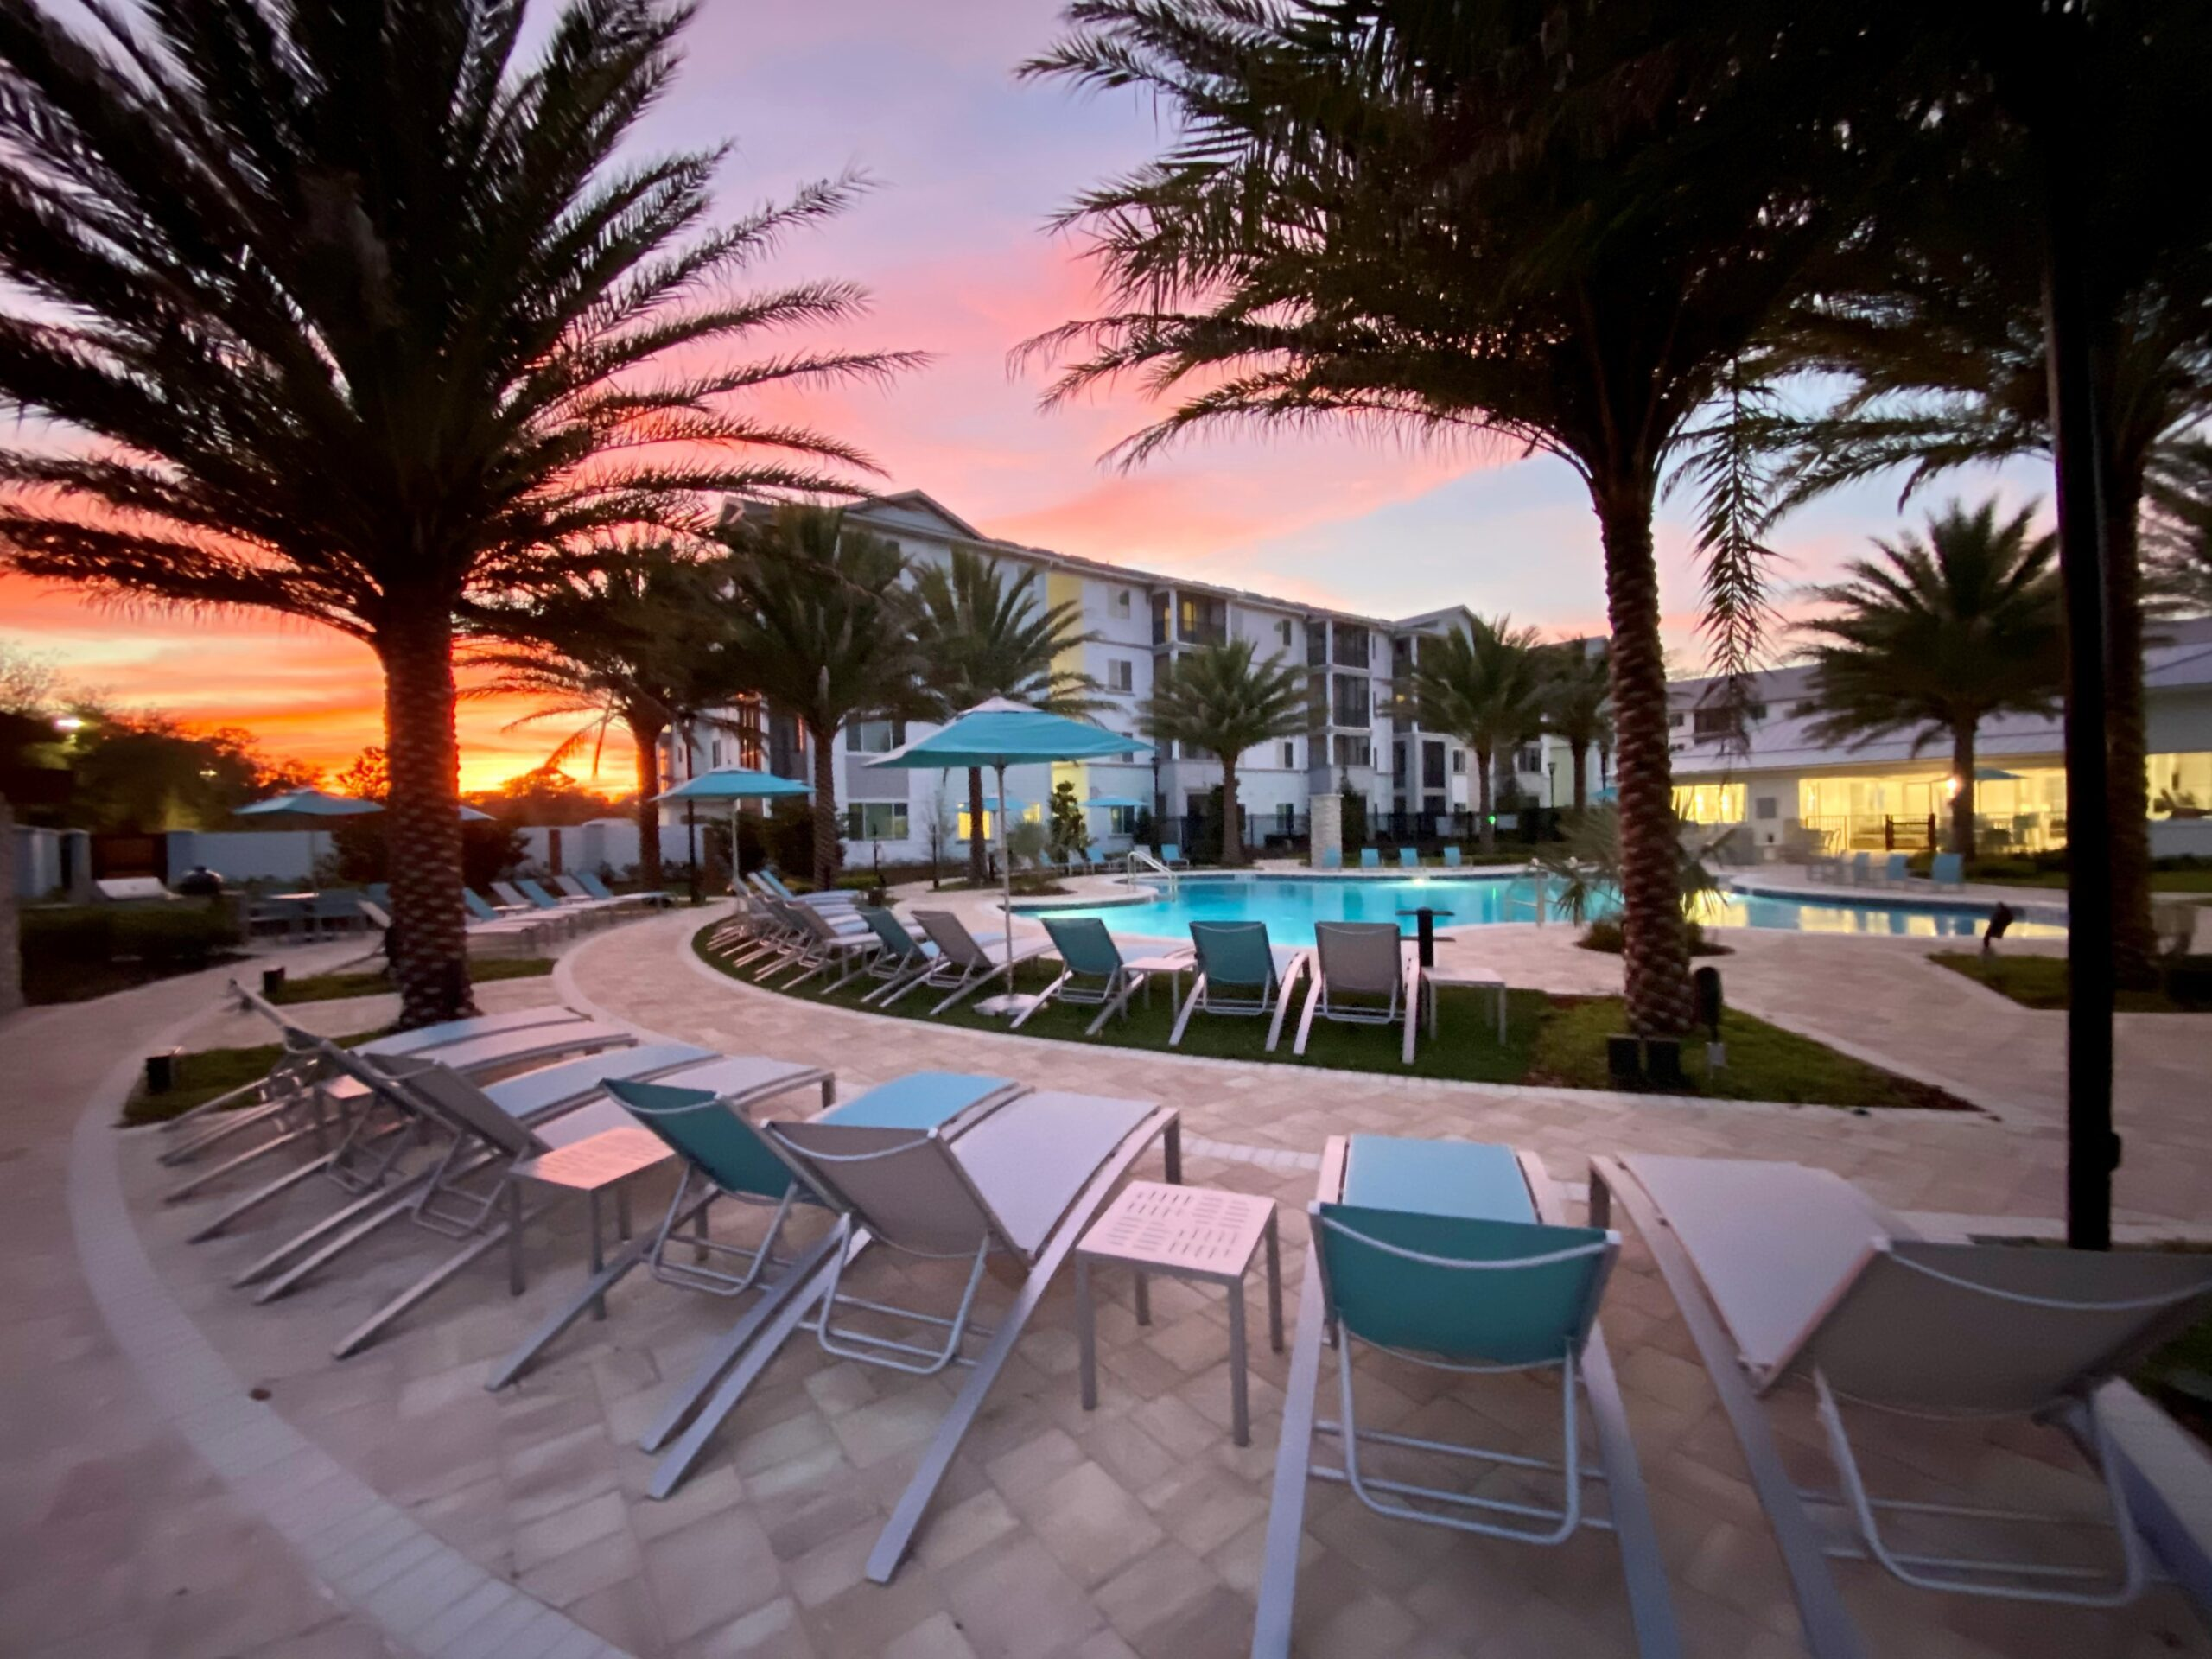 The Enclave at 3230 brand new apartments in South Daytona Florida pool area